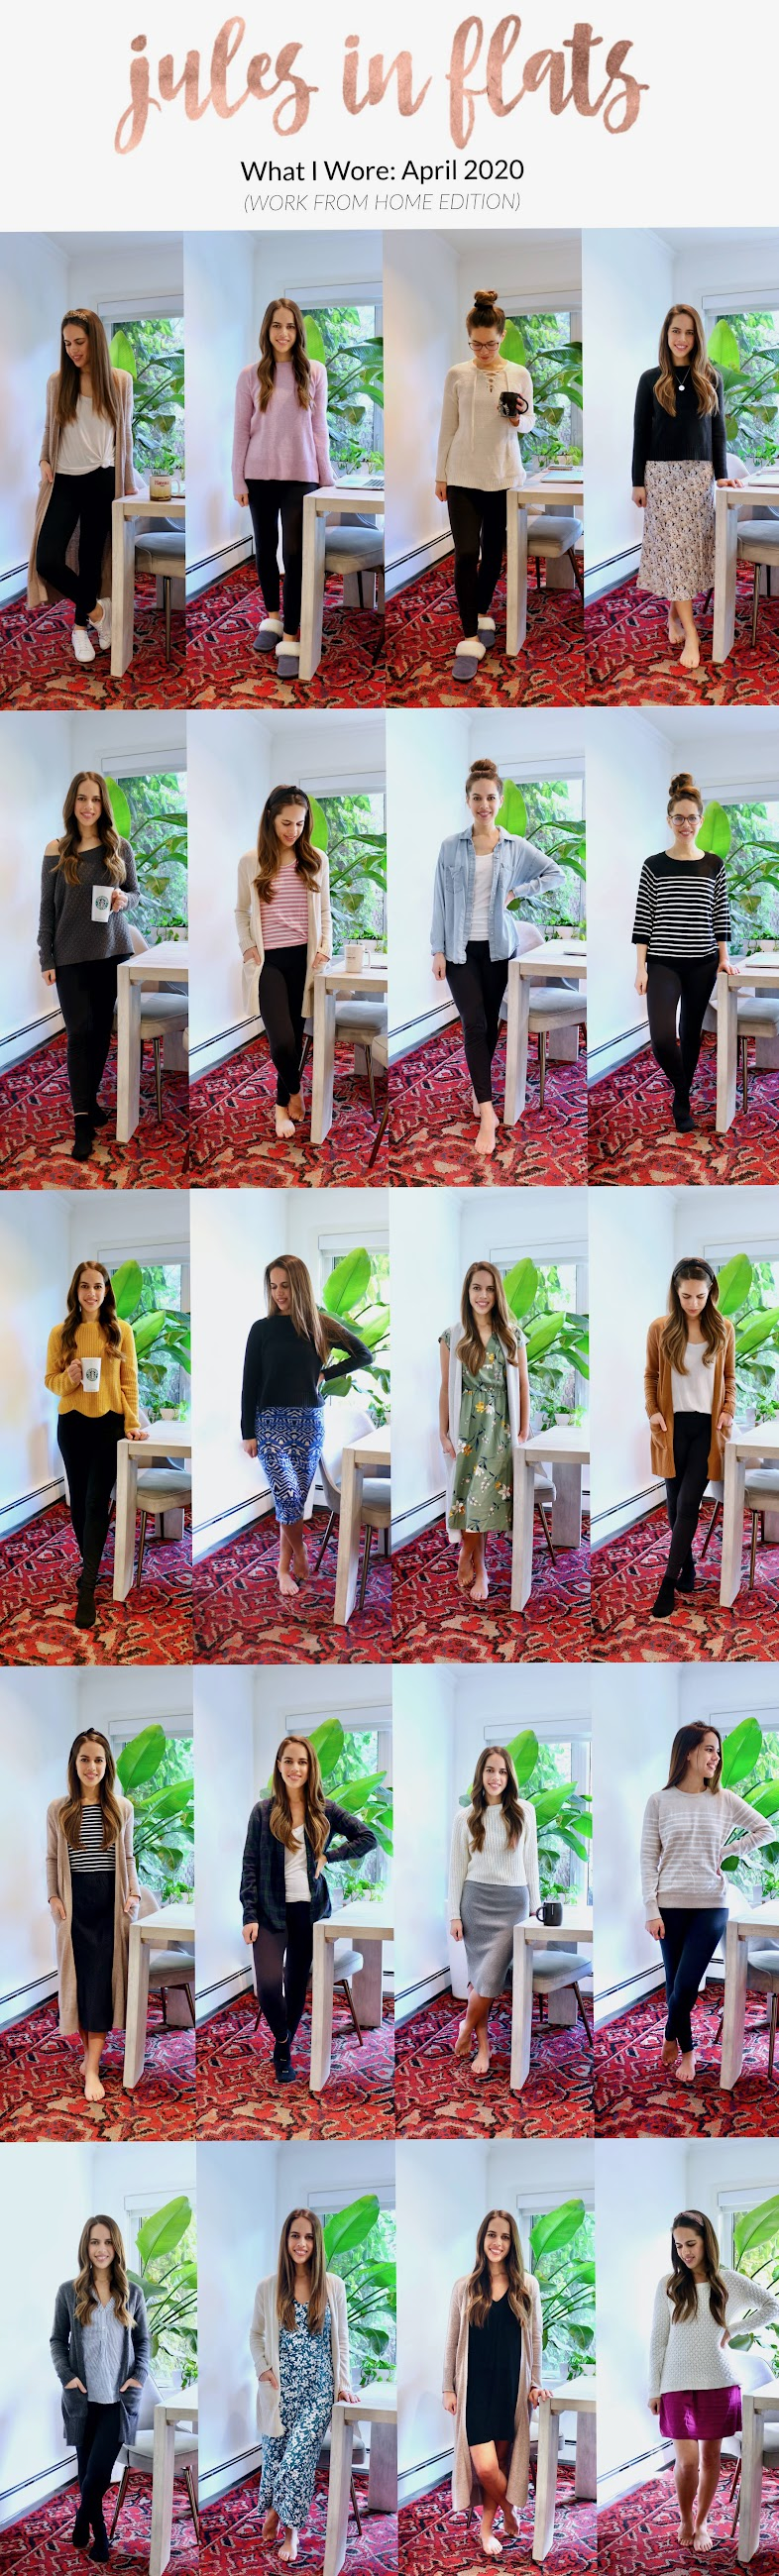 Jules in Flats: Monthly Outfit Roundup April 2020 (Work from Home Looks)